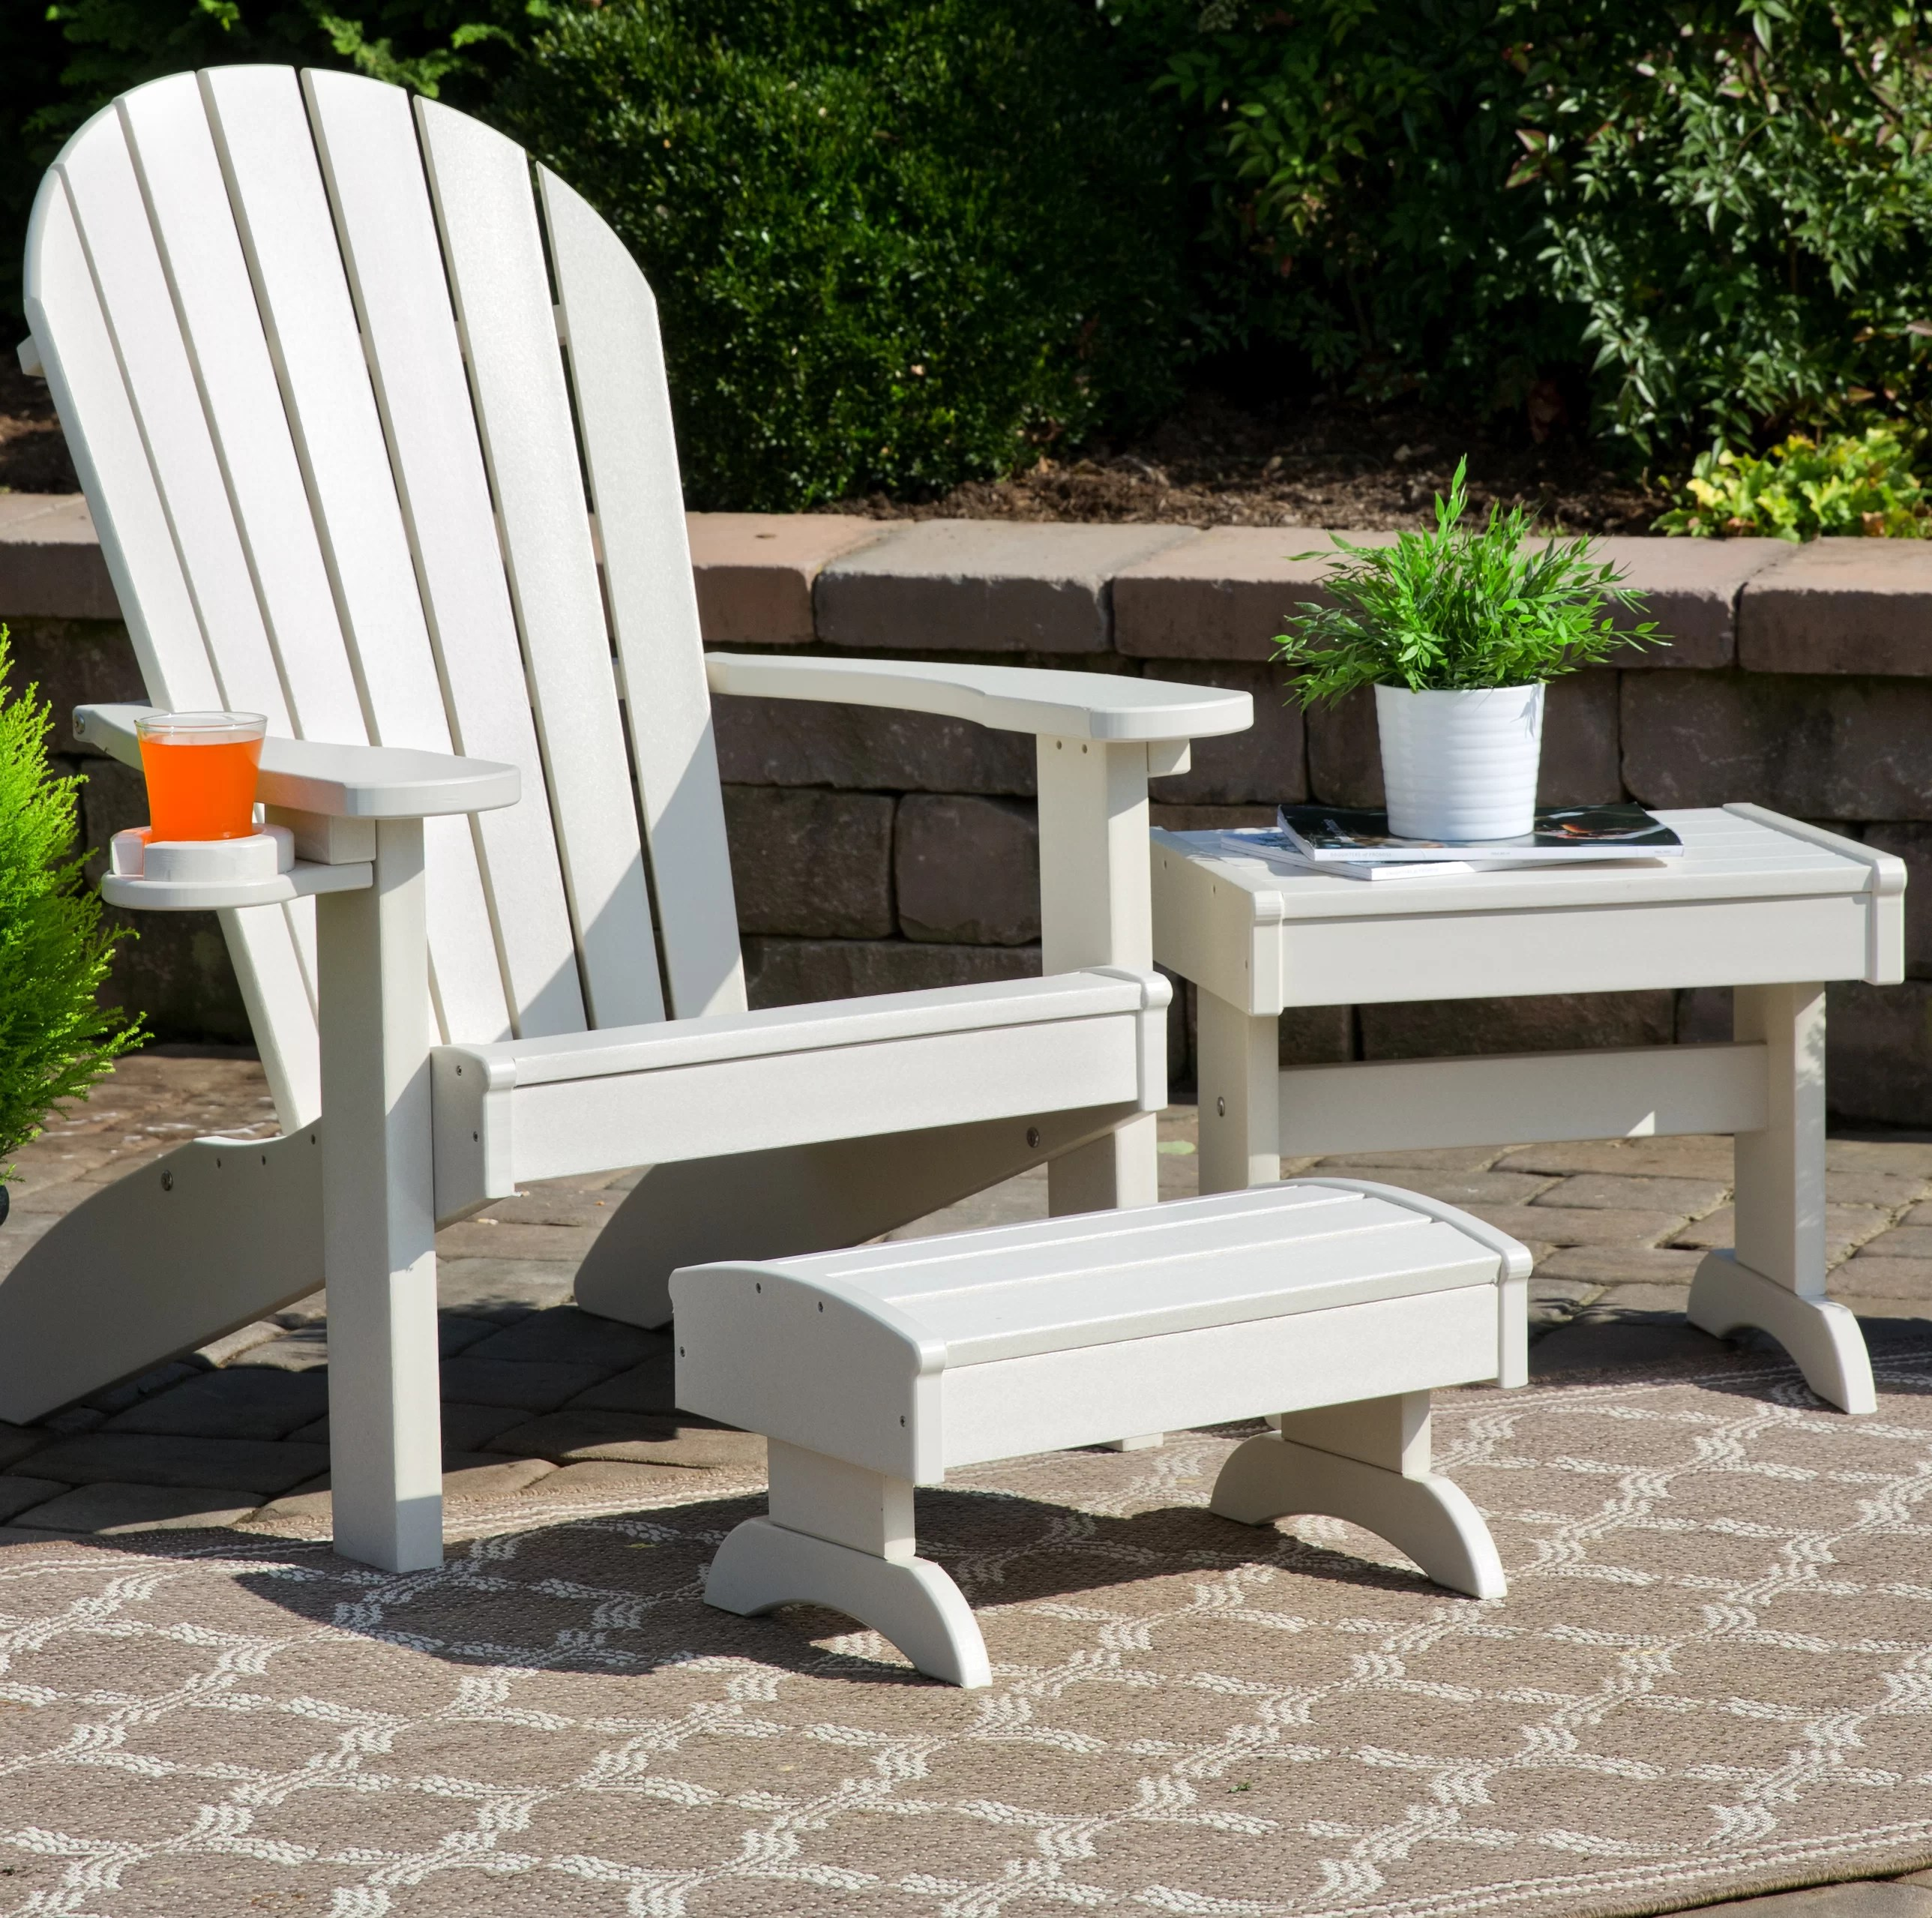 Adirondack Chair Set Kells 3 Piece Plastic Adirondack Chair Set With Ottoman And Table